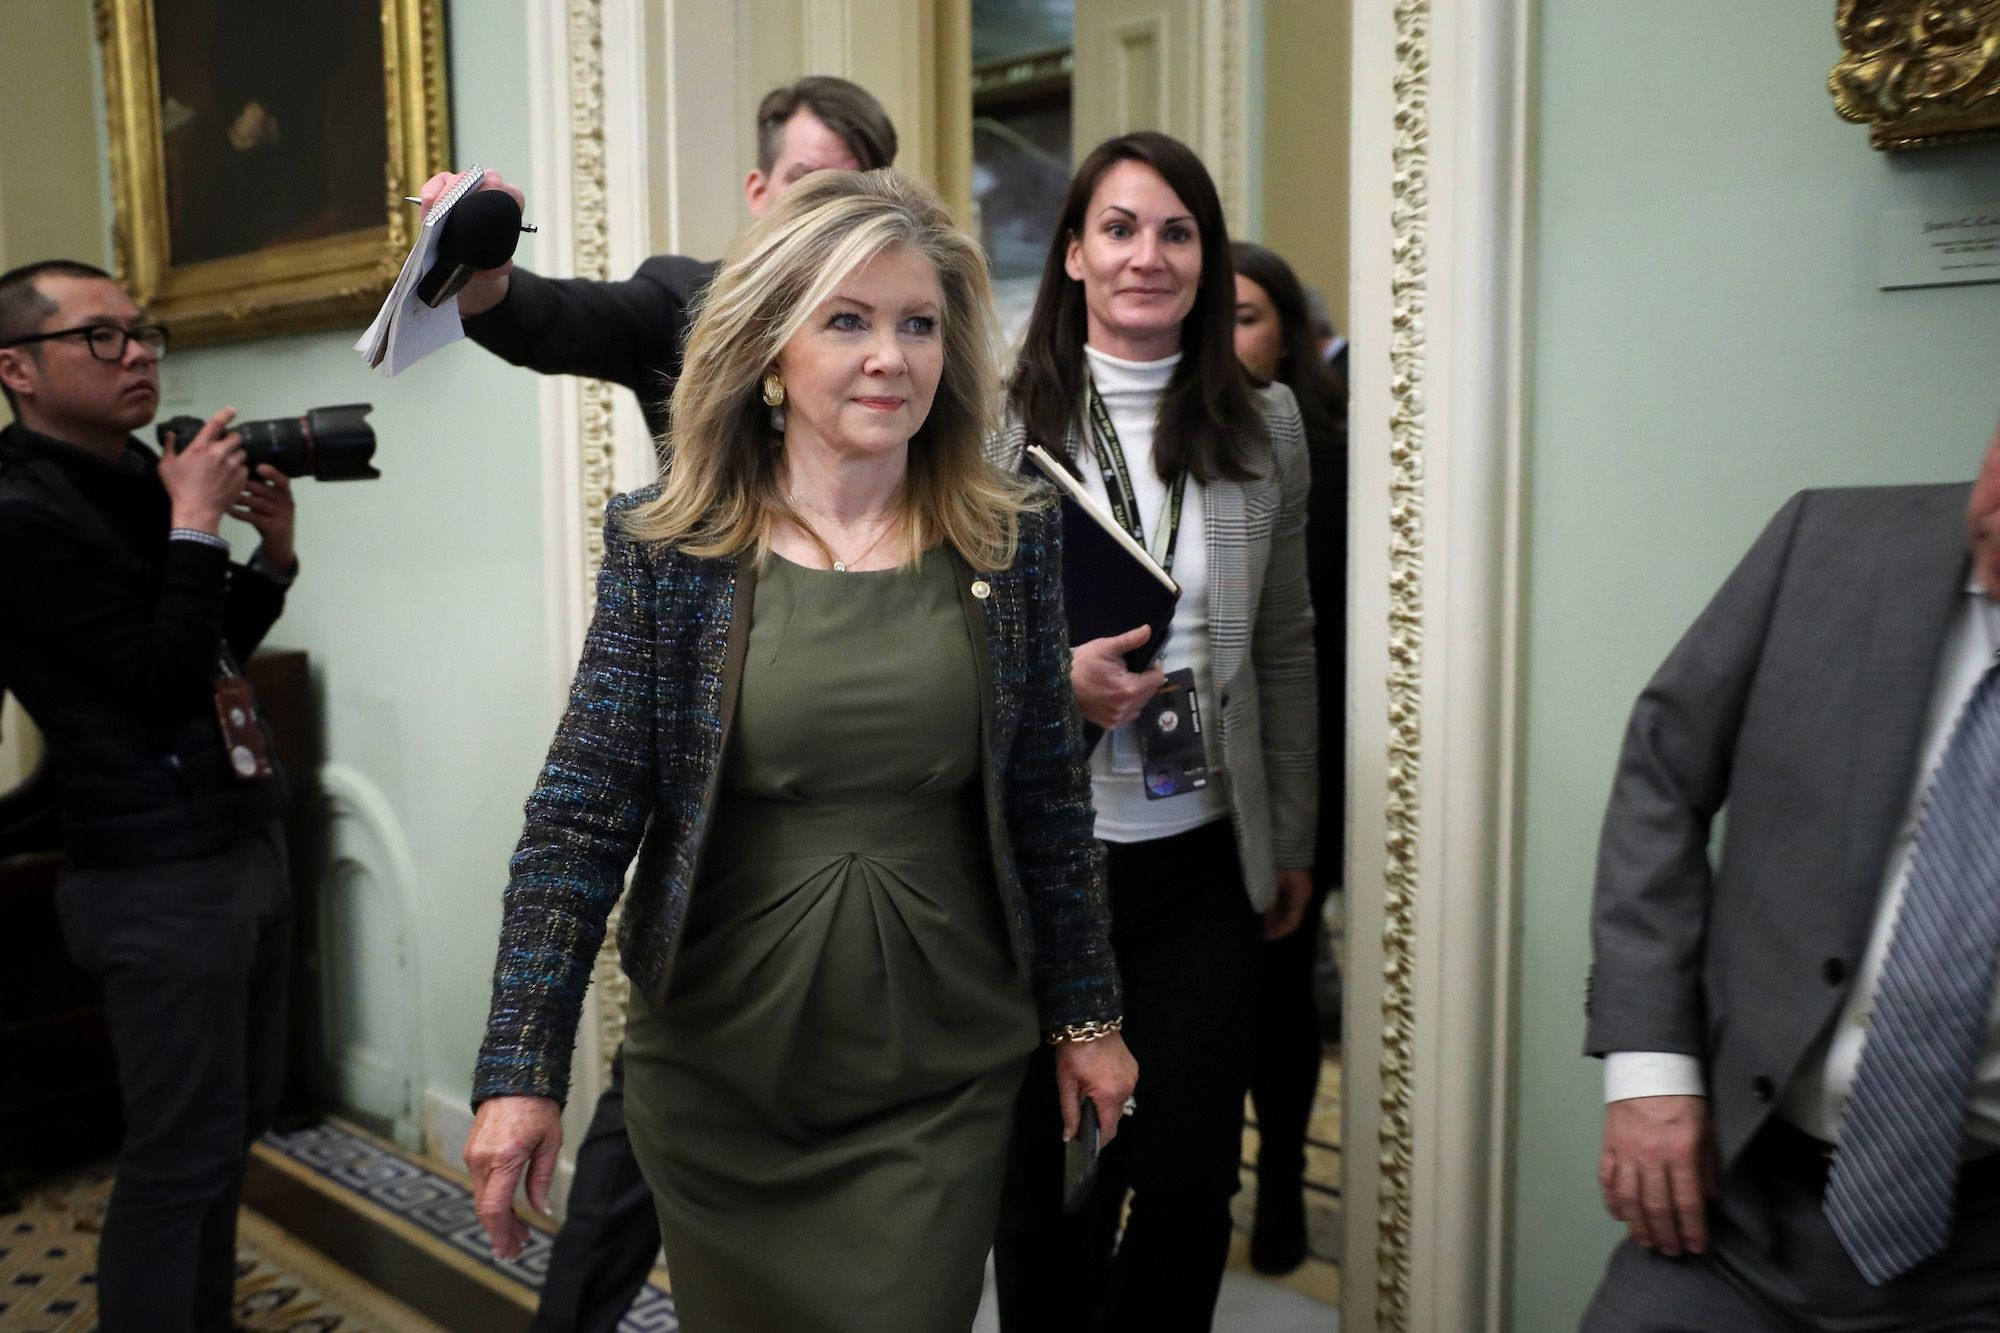 Marsha Blackburn Is a Steadfast Defender of Foreign Interference in American Elections